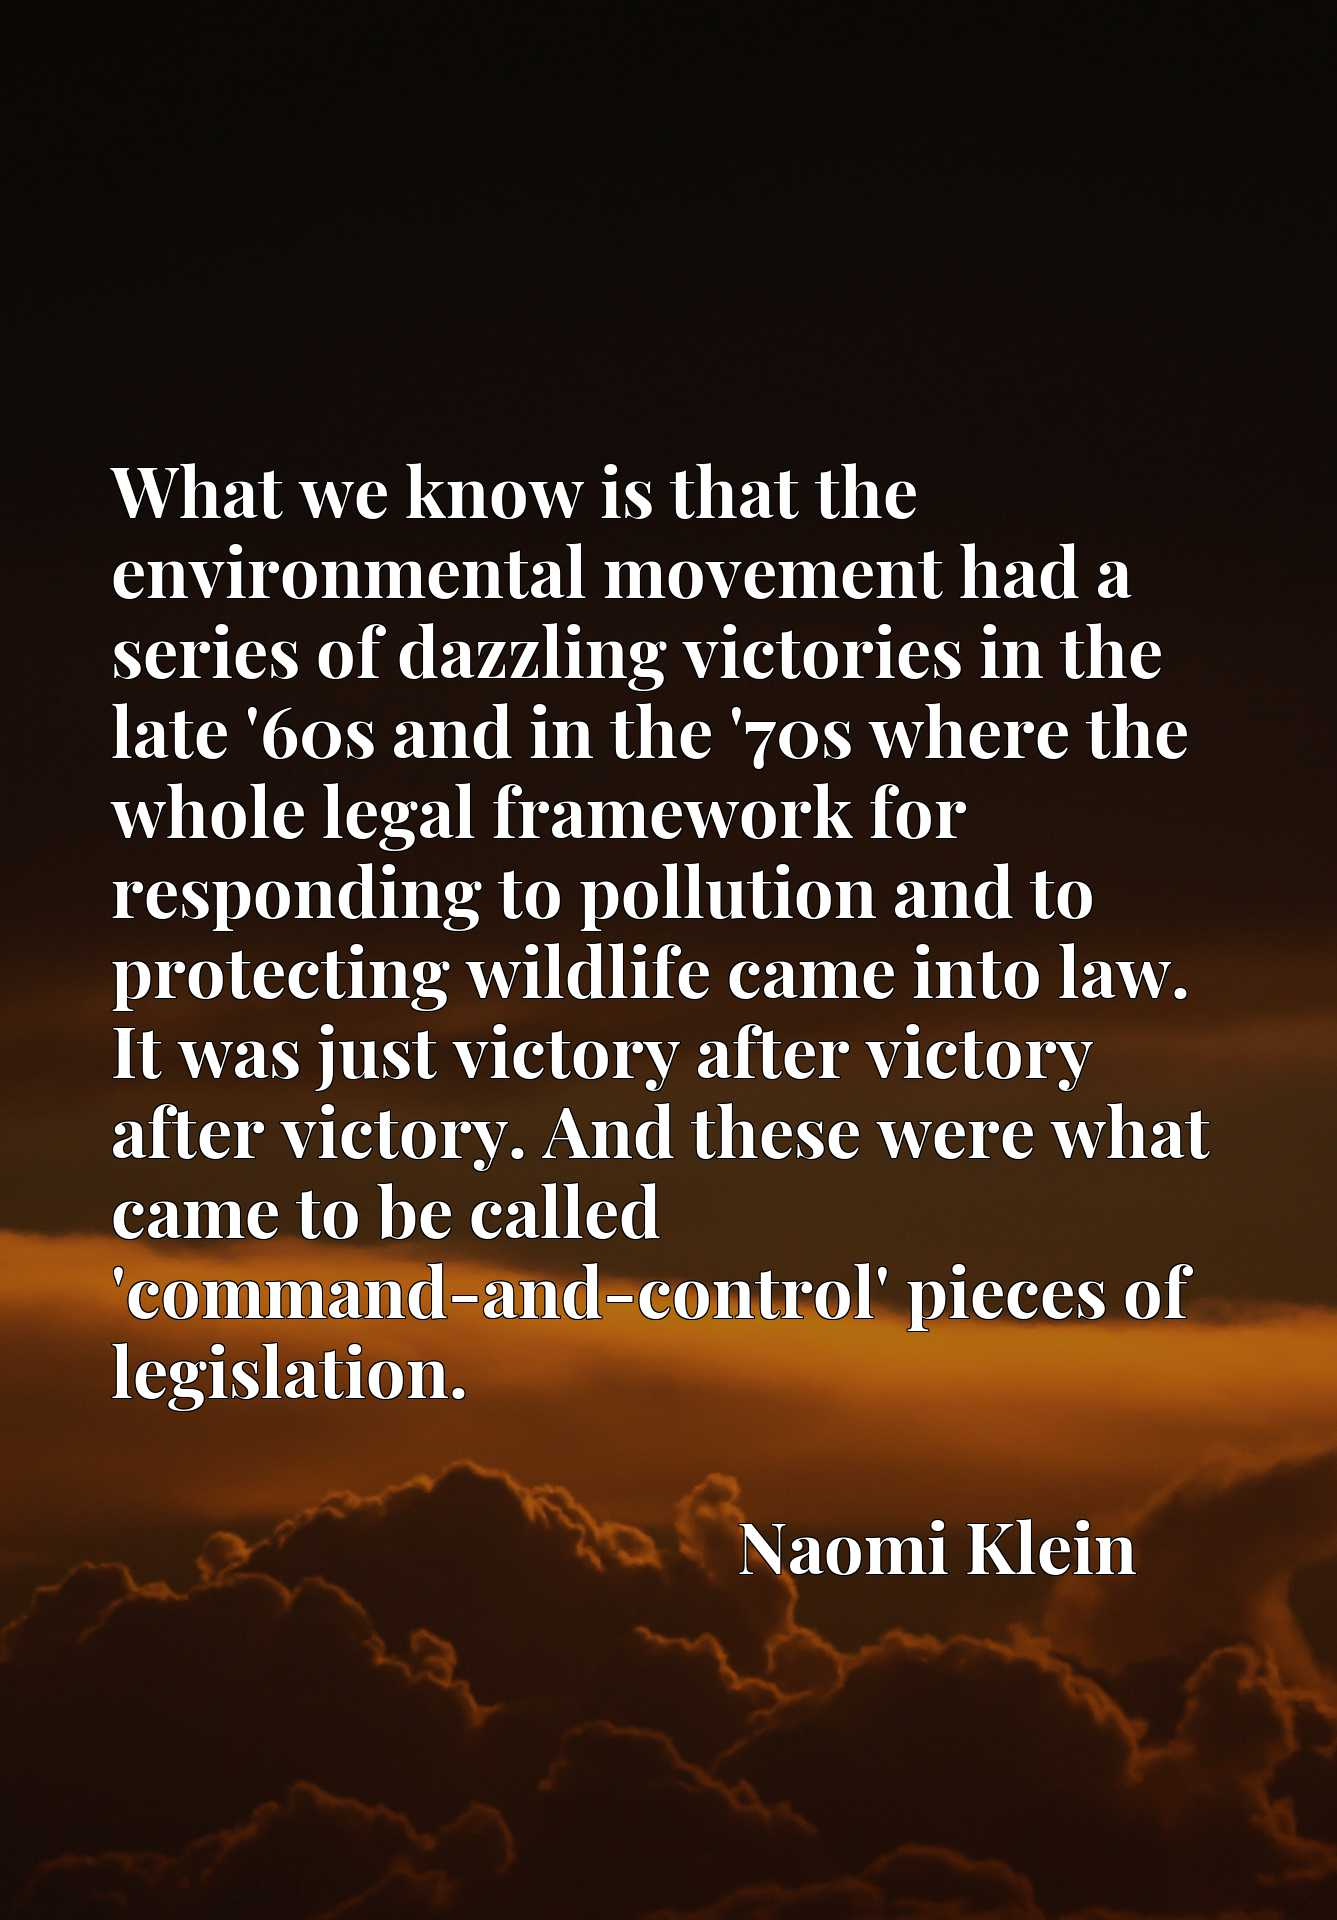 What we know is that the environmental movement had a series of dazzling victories in the late '60s and in the '70s where the whole legal framework for responding to pollution and to protecting wildlife came into law. It was just victory after victory after victory. And these were what came to be called 'command-and-control' pieces of legislation.